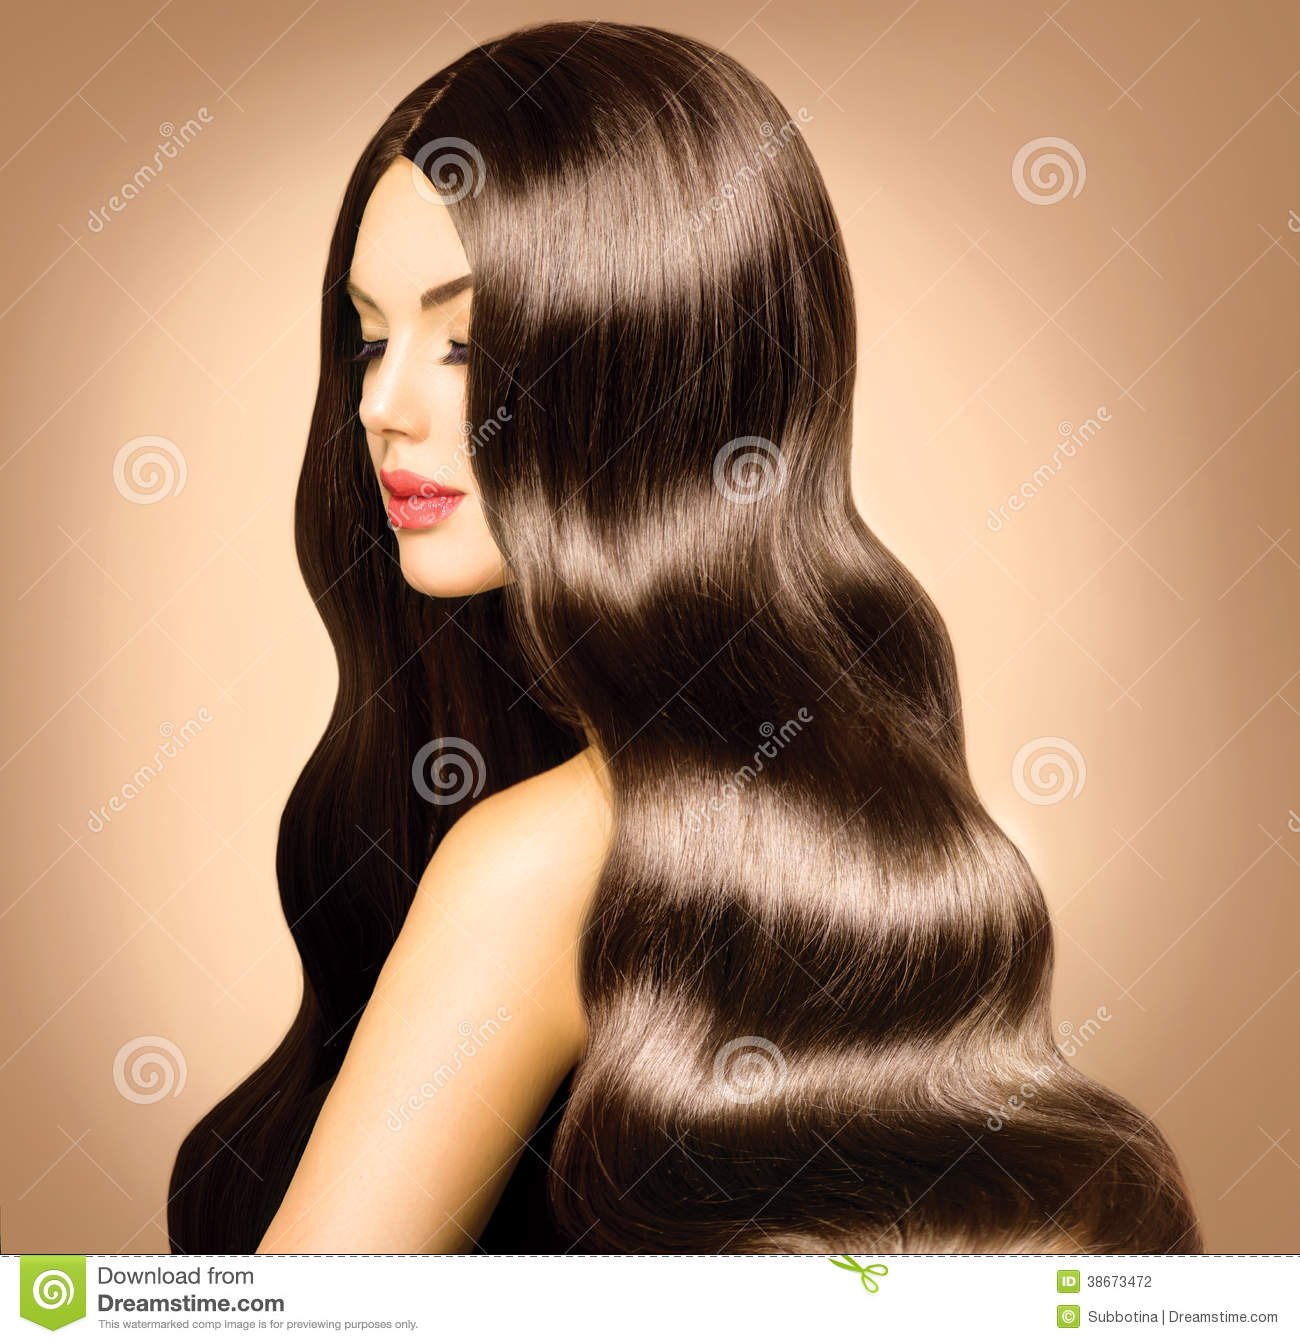 Woman with Long Healthy Wavy Hair.